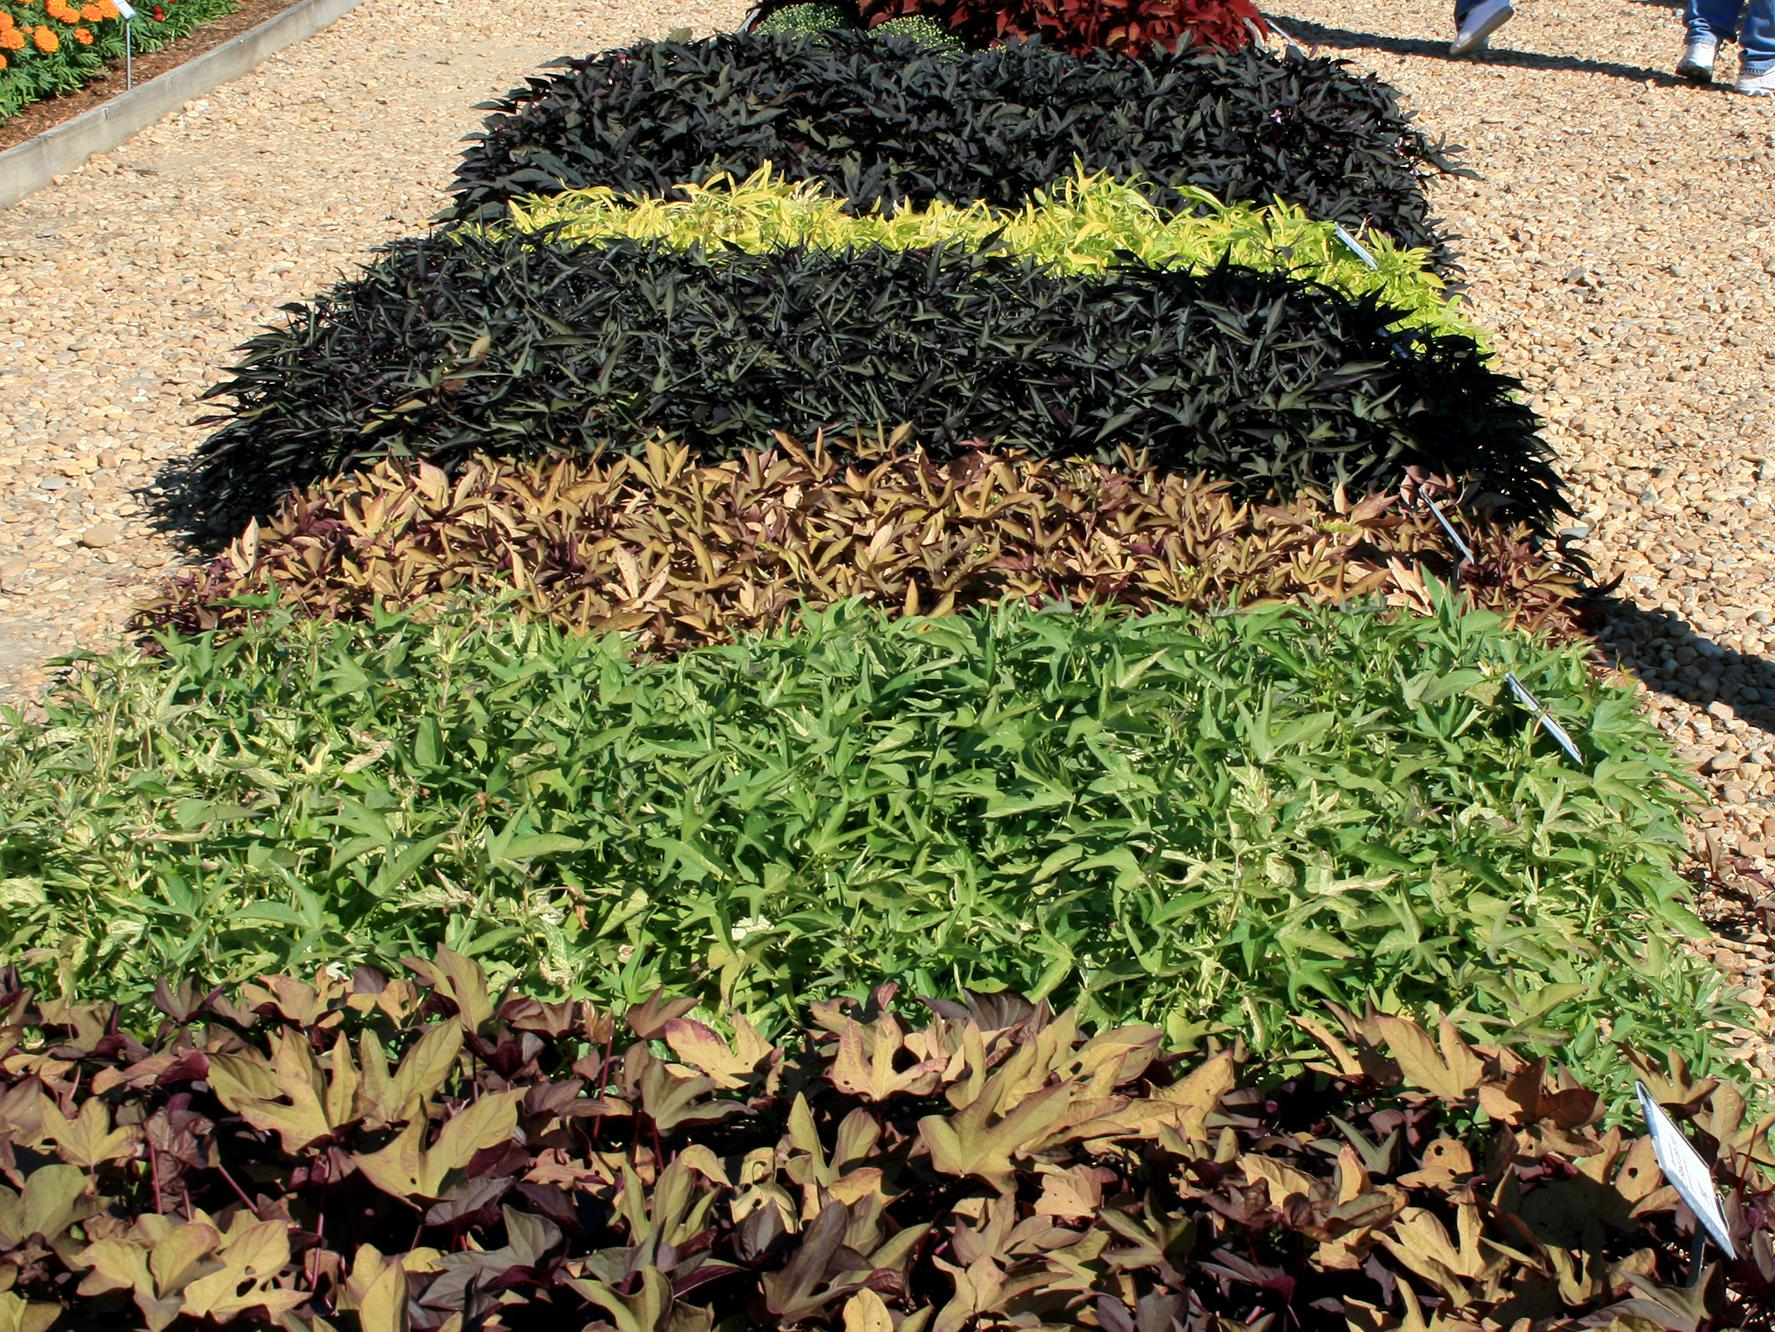 The ornamental sweet potato is a go-to choice for large areas that need some kind of colorful ground cover. It is a great plant for massing and comes in a wide variety of colors and textures. (Photo by MSU Extension/Gary Bachman)